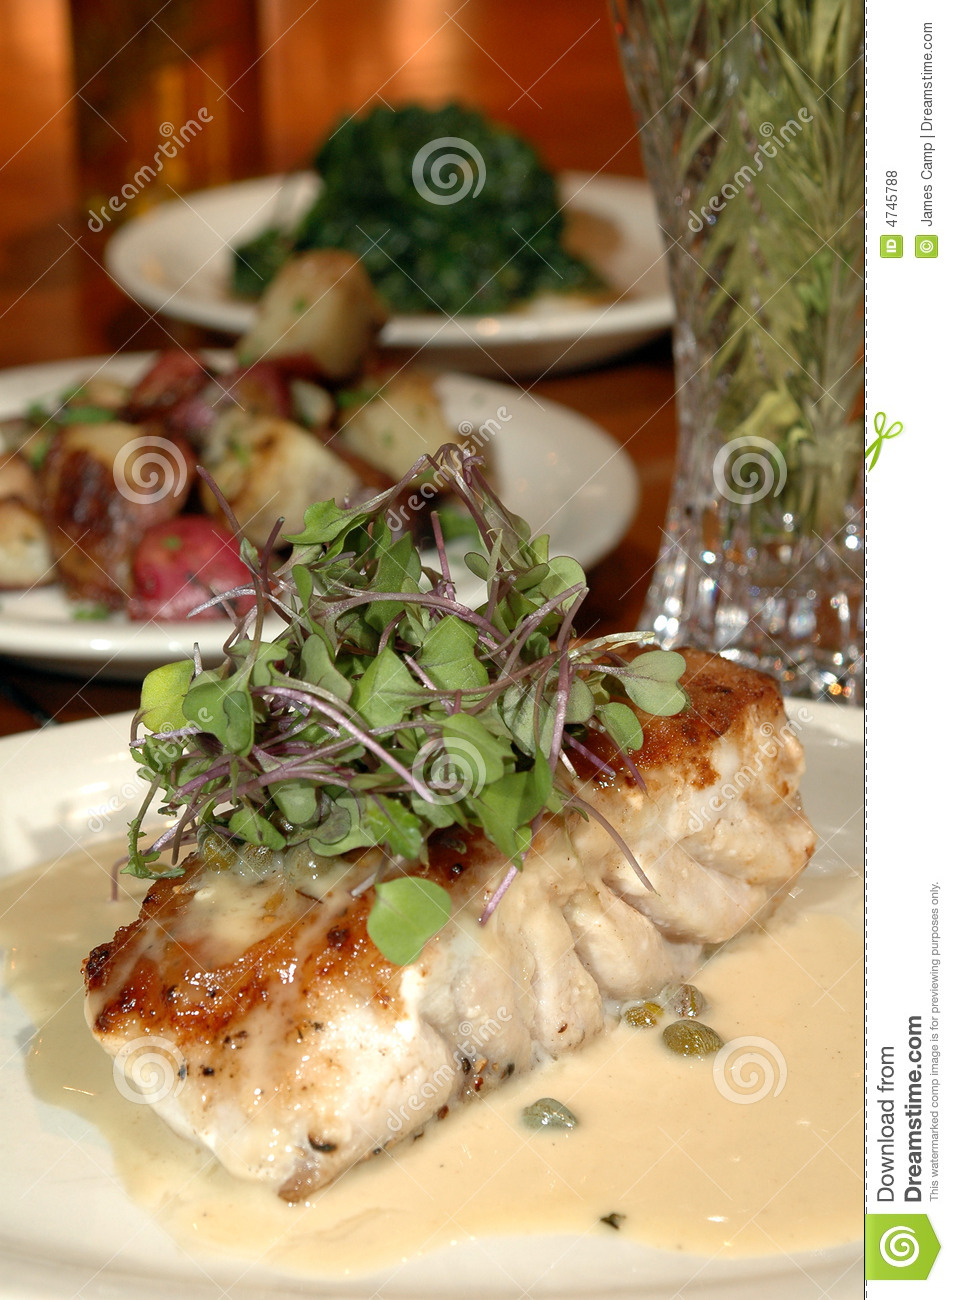 Baked fish and sides royalty free stock photos image for What sides go with fish